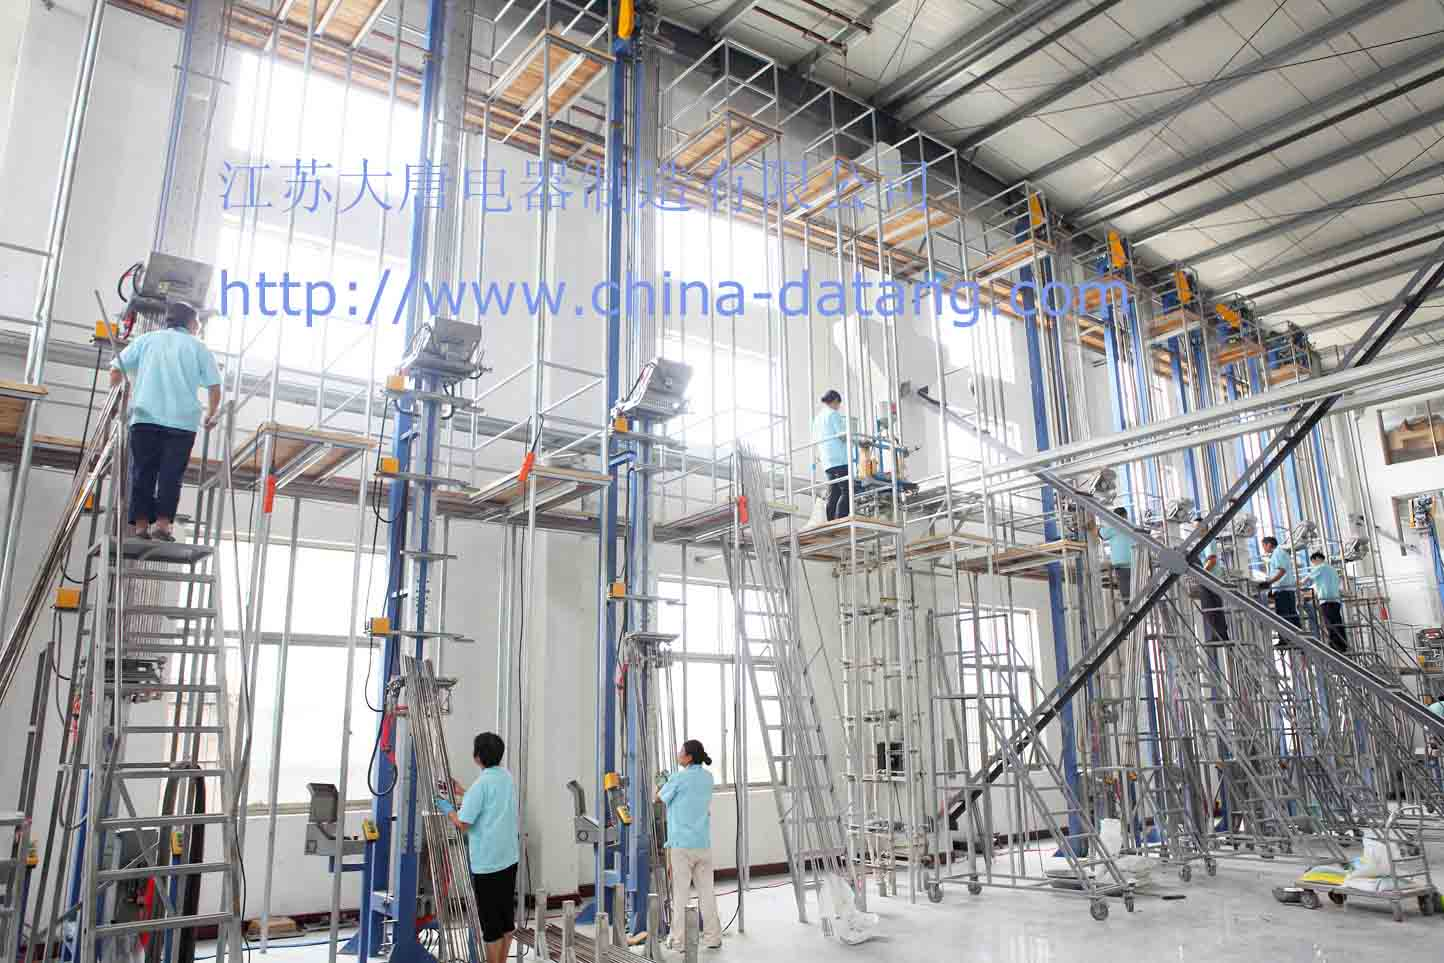 Filling insulation workplace